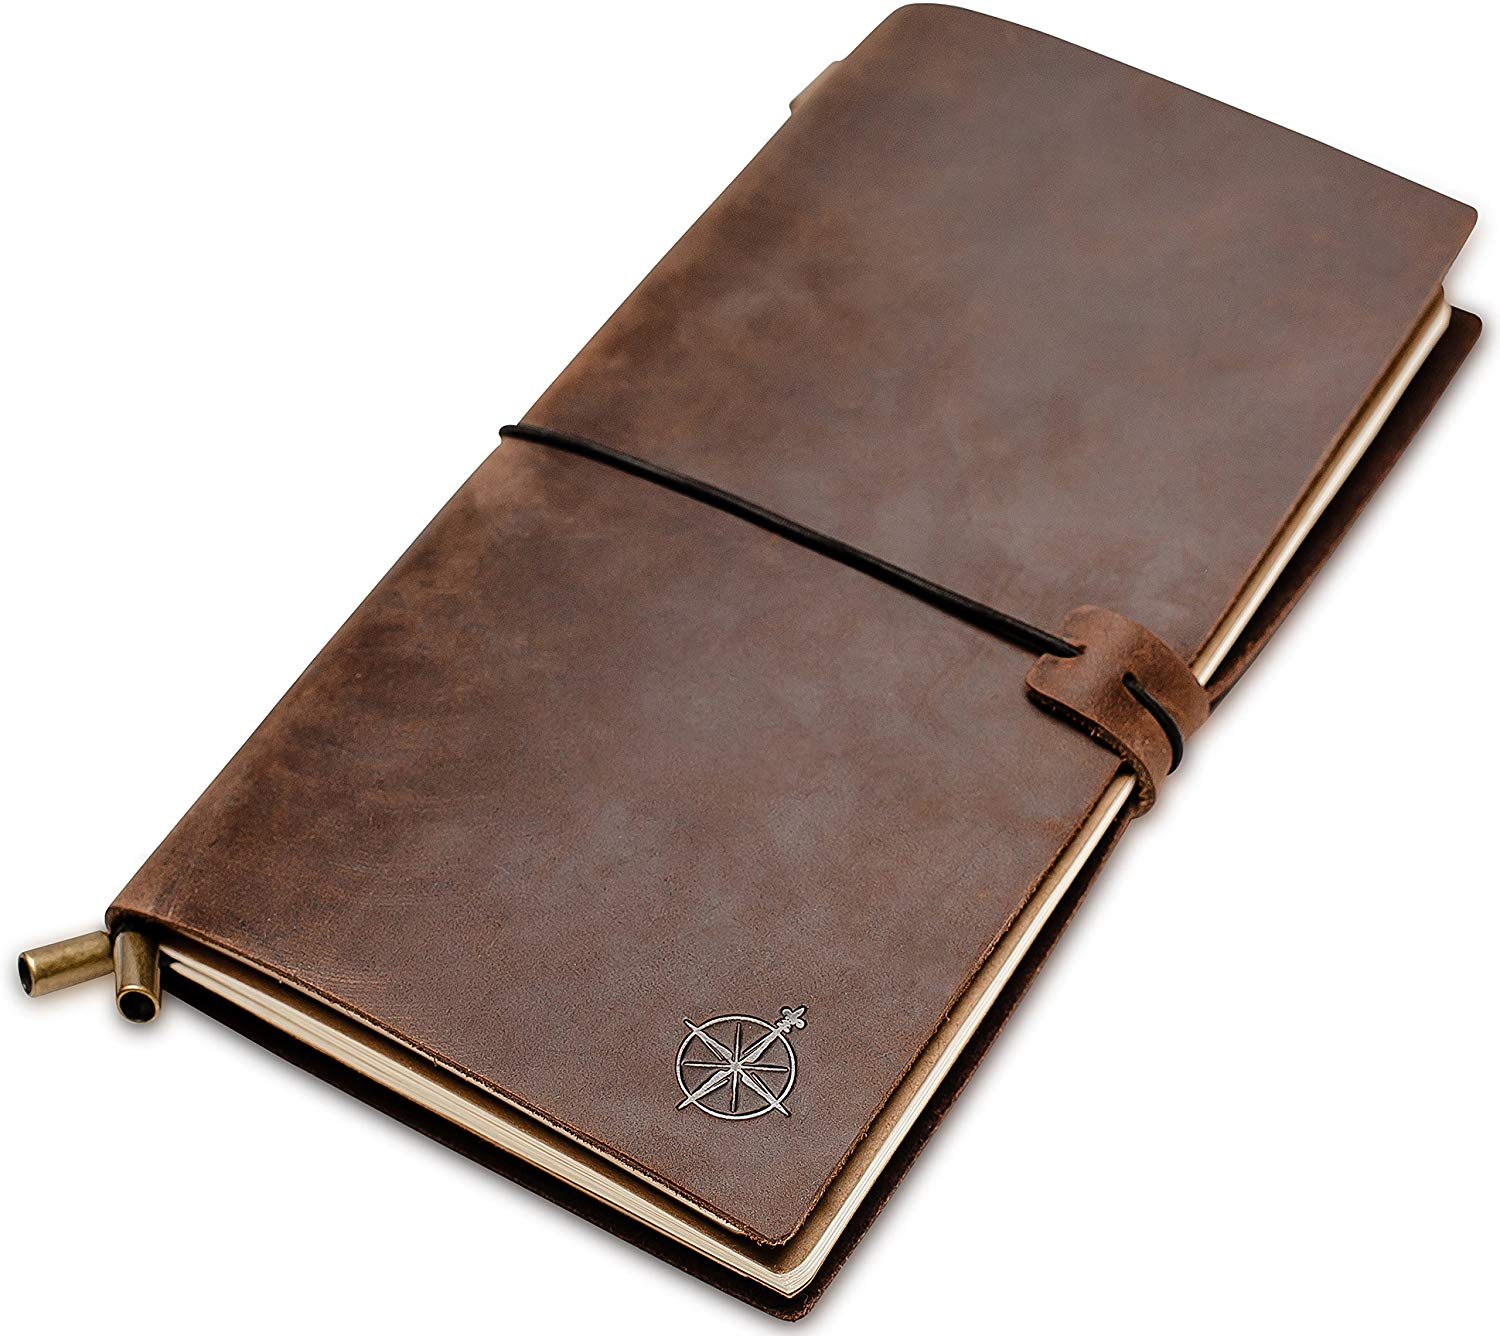 Leather Notebook - Refillable Travel Journal